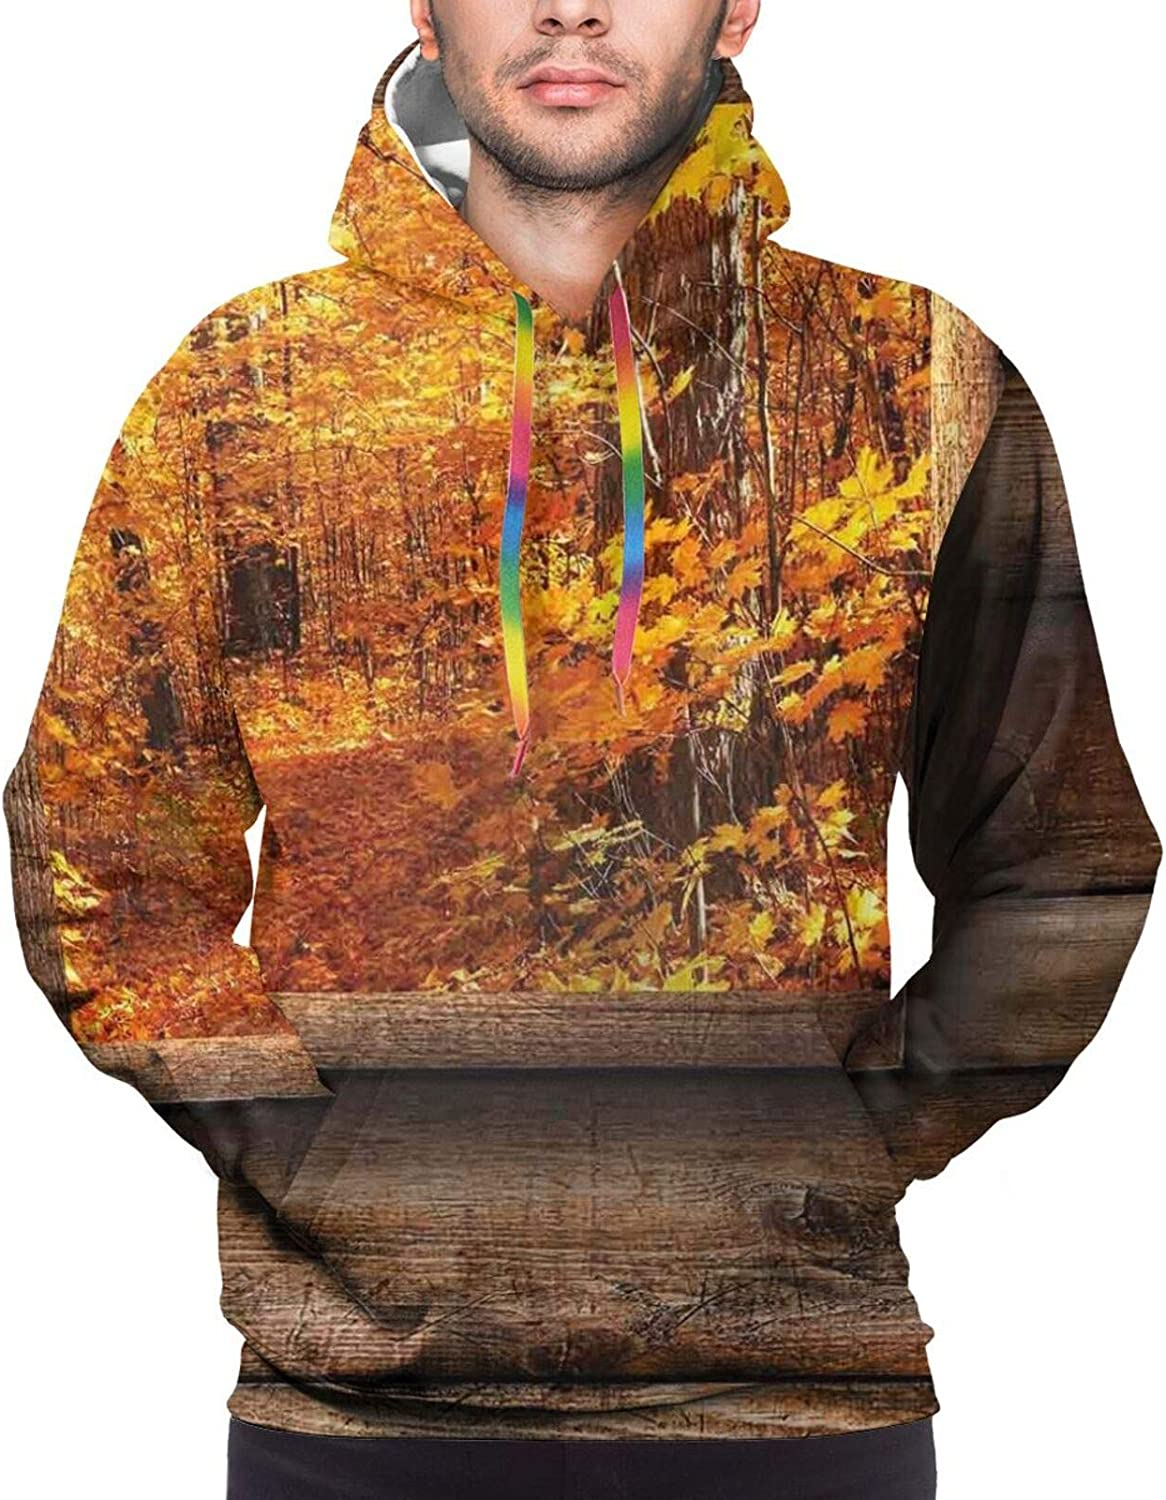 Men's Hoodies Sweatshirts,Fall Colored Trees and Snowy Mountain Landscape with Crystal Lake Nature